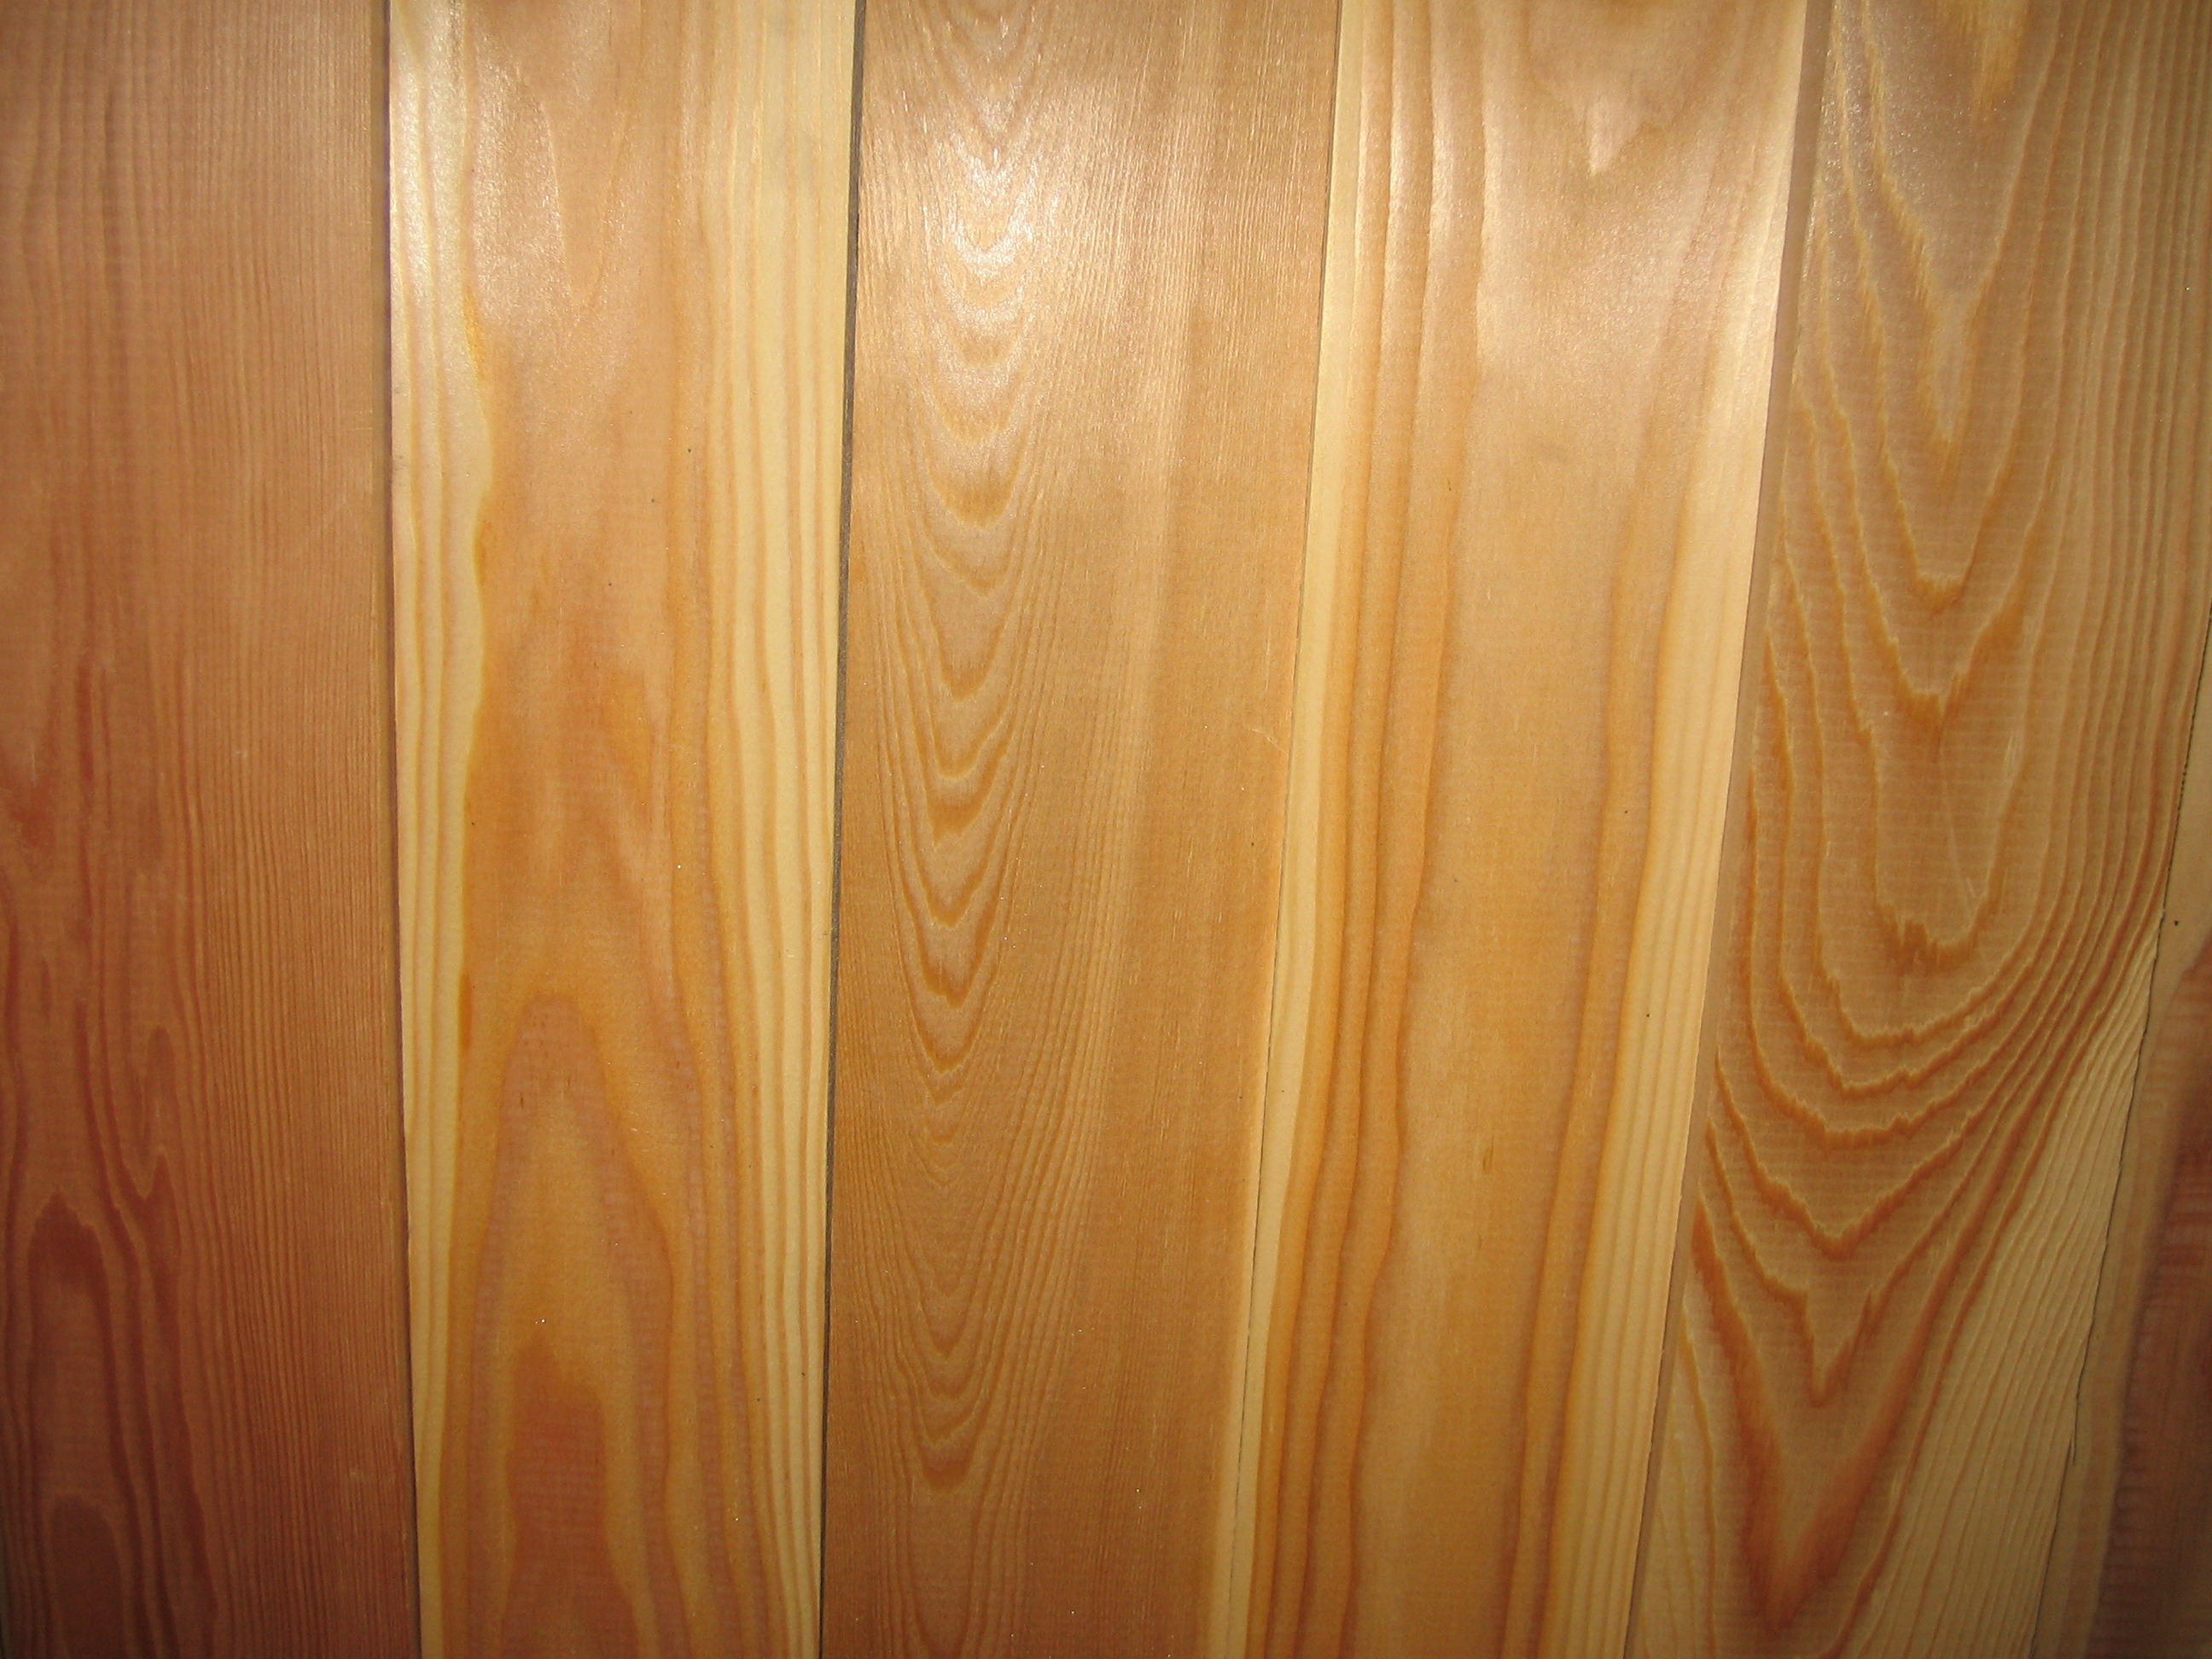 D And Better Clear Grade Douglas Fir